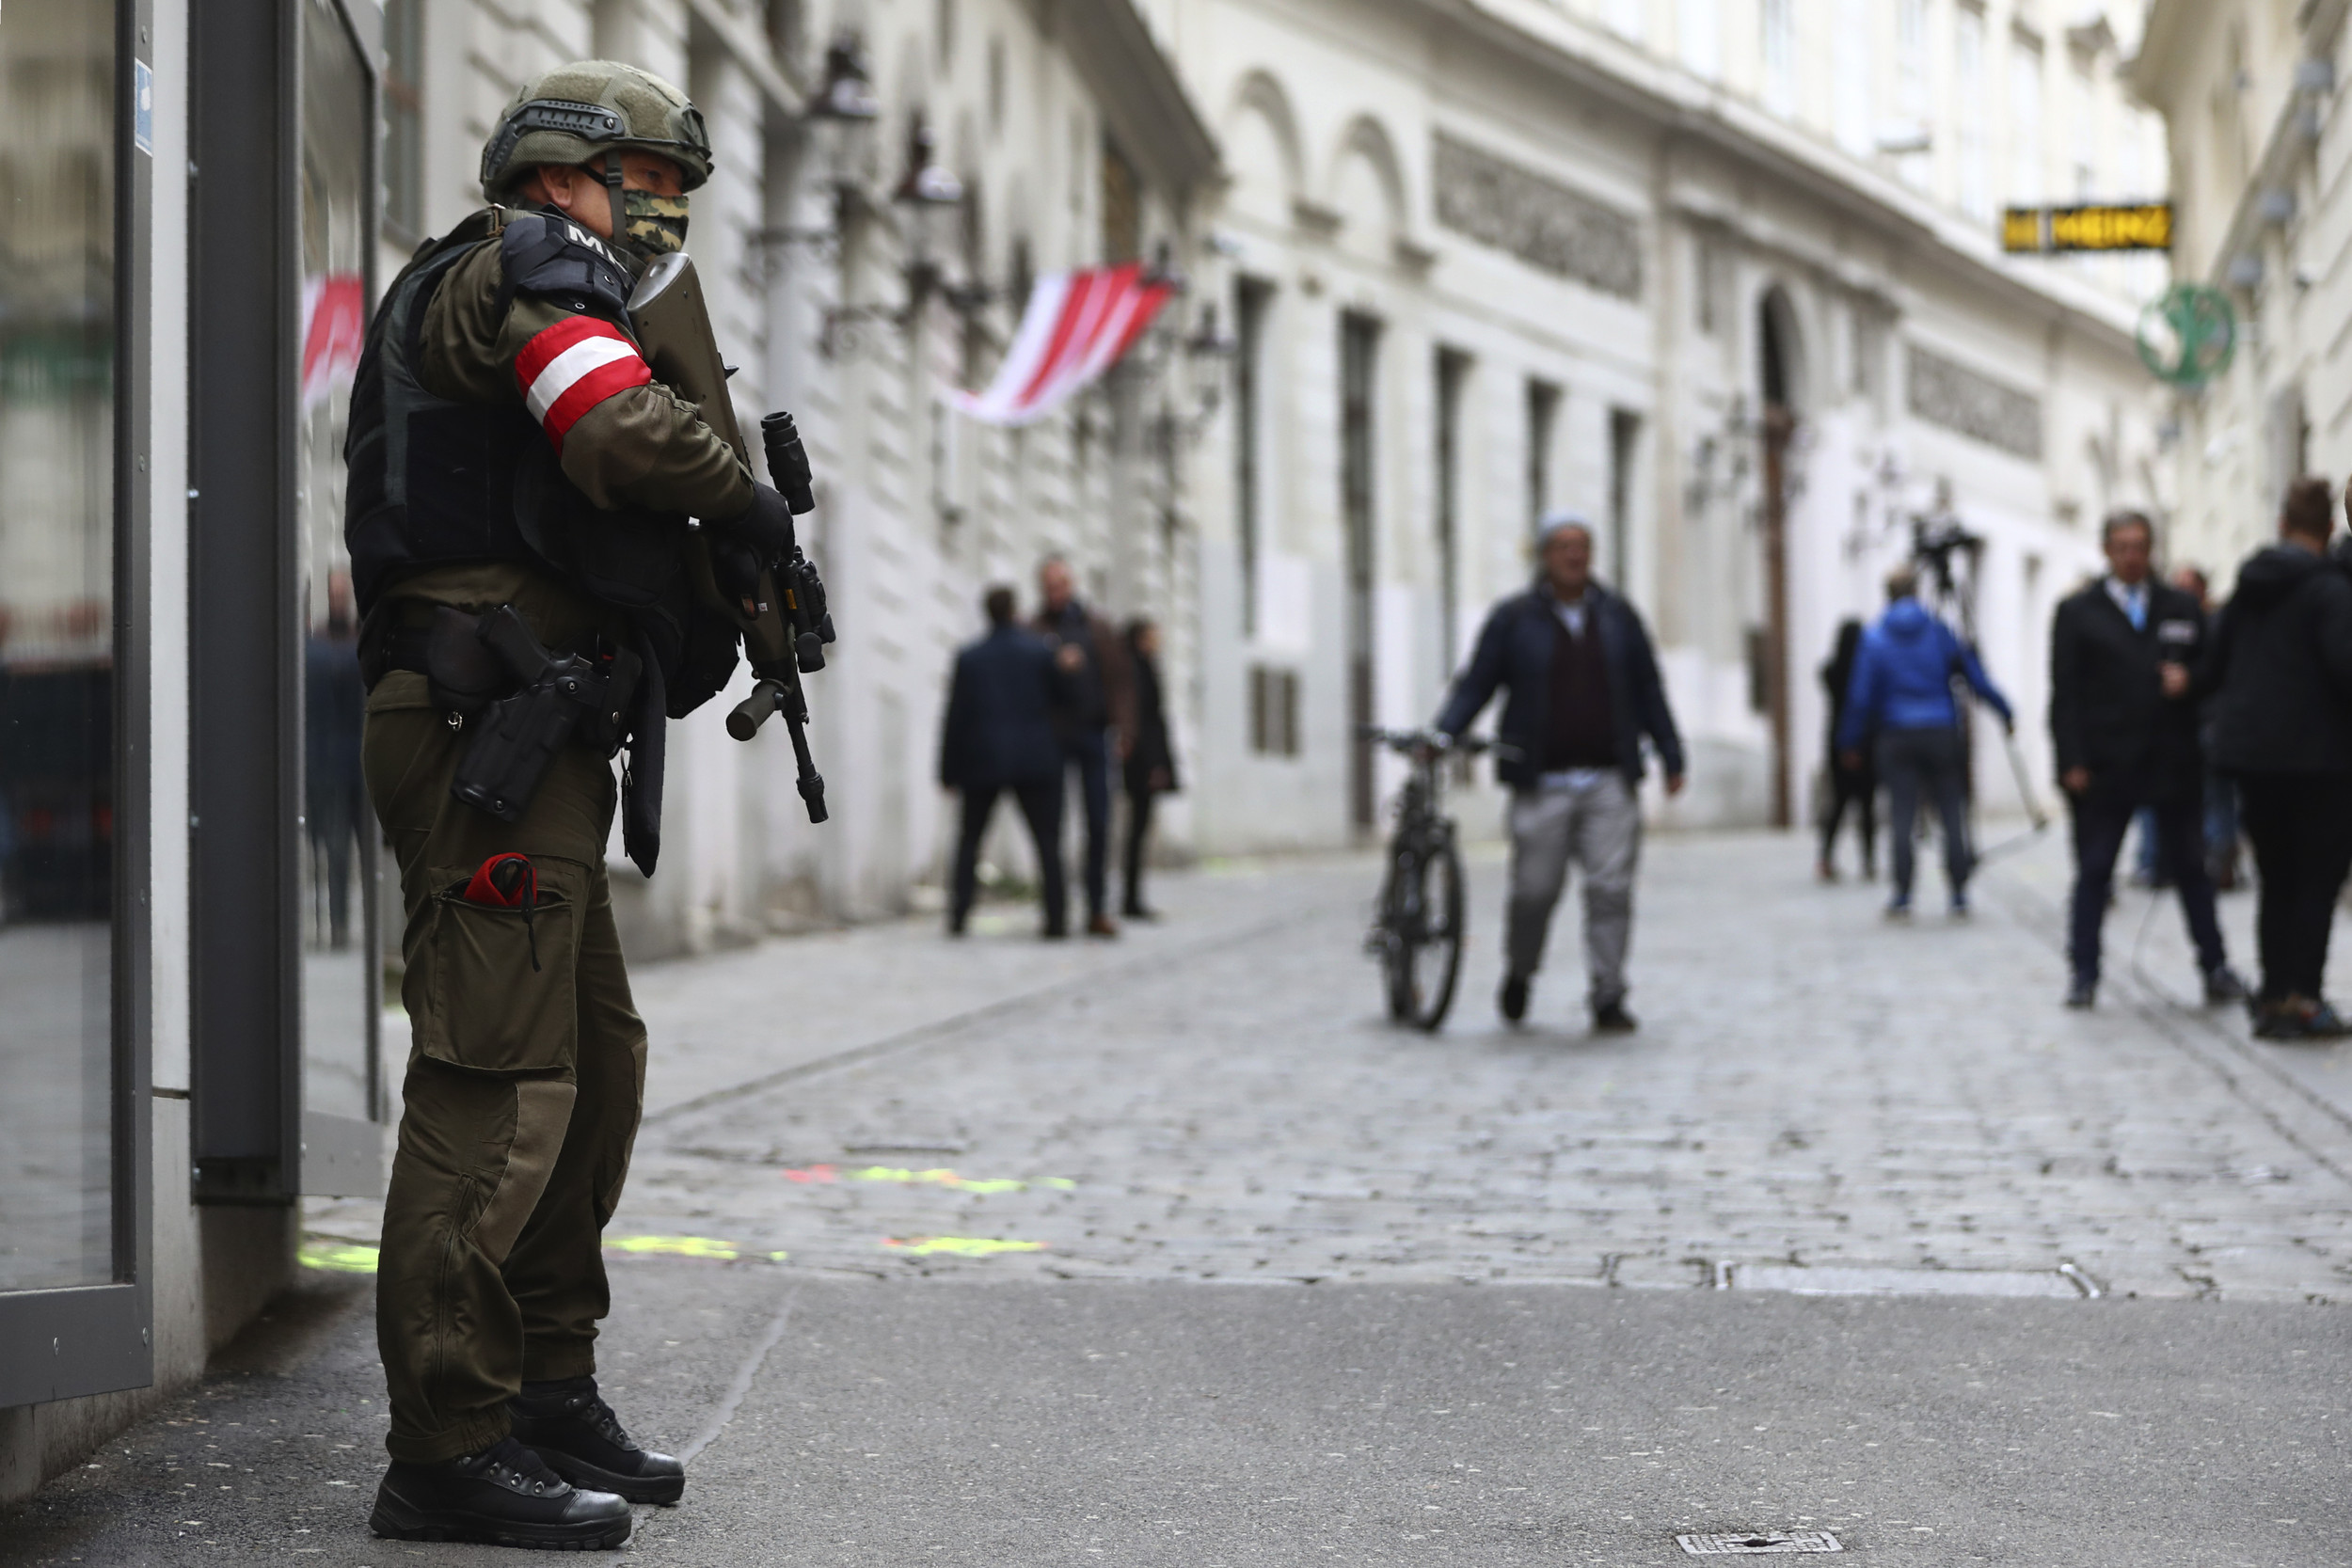 Austria plans intelligence agency reforms after attack